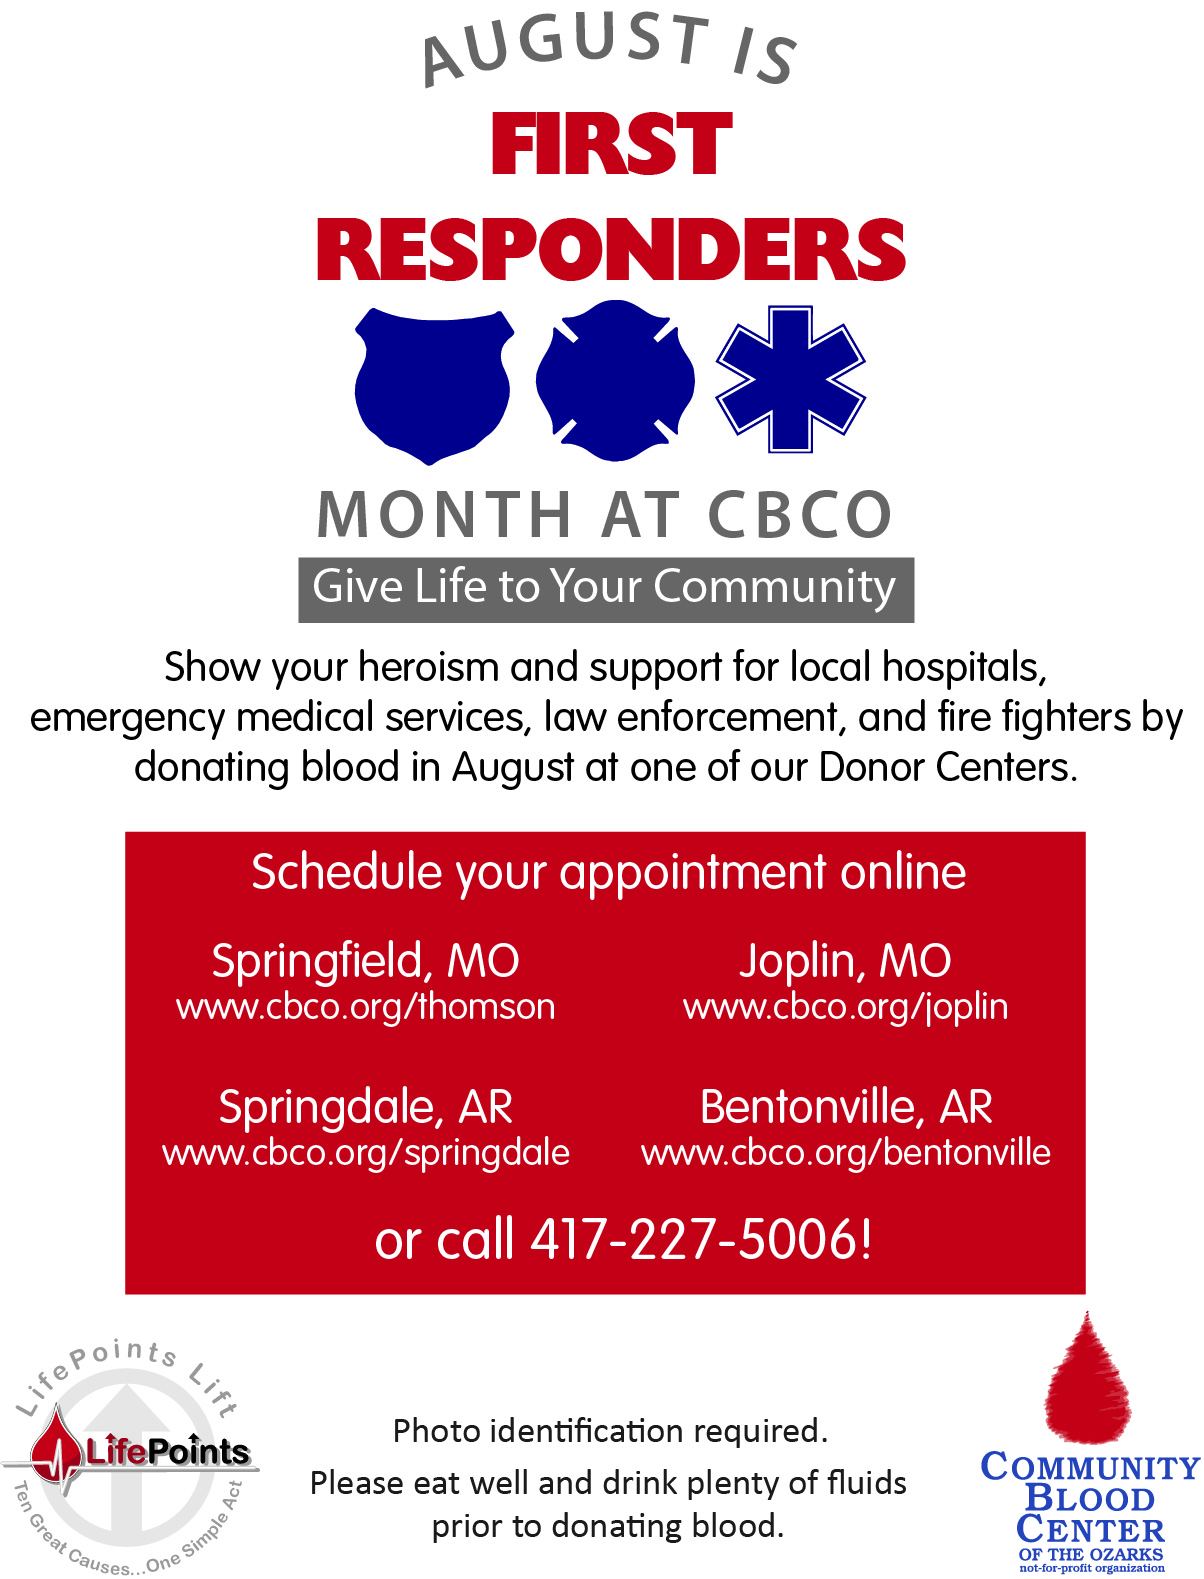 August 2018 is First Responders Month at CBCO